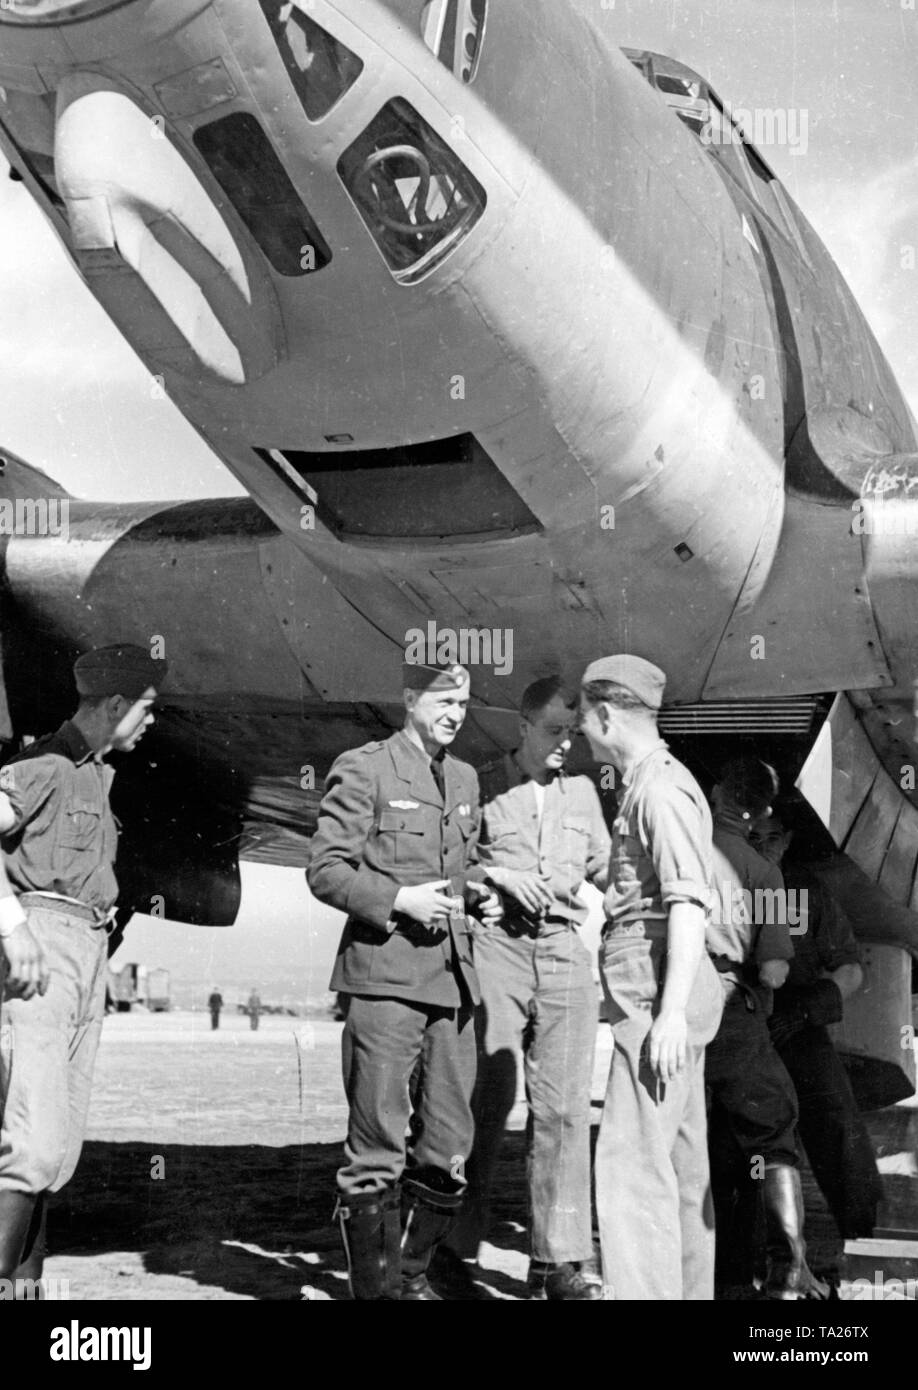 Photo of a Major of the Combat Group 88 of the Condor Legion in conversation with soldiers of the ground personnel at an airfield in Spain. The soldiers are standing under the hull of a Heinkel He 111 bomber. In the upper edge of the photo, the forward gunner compartment, which was made of plexiglass. - Stock Image